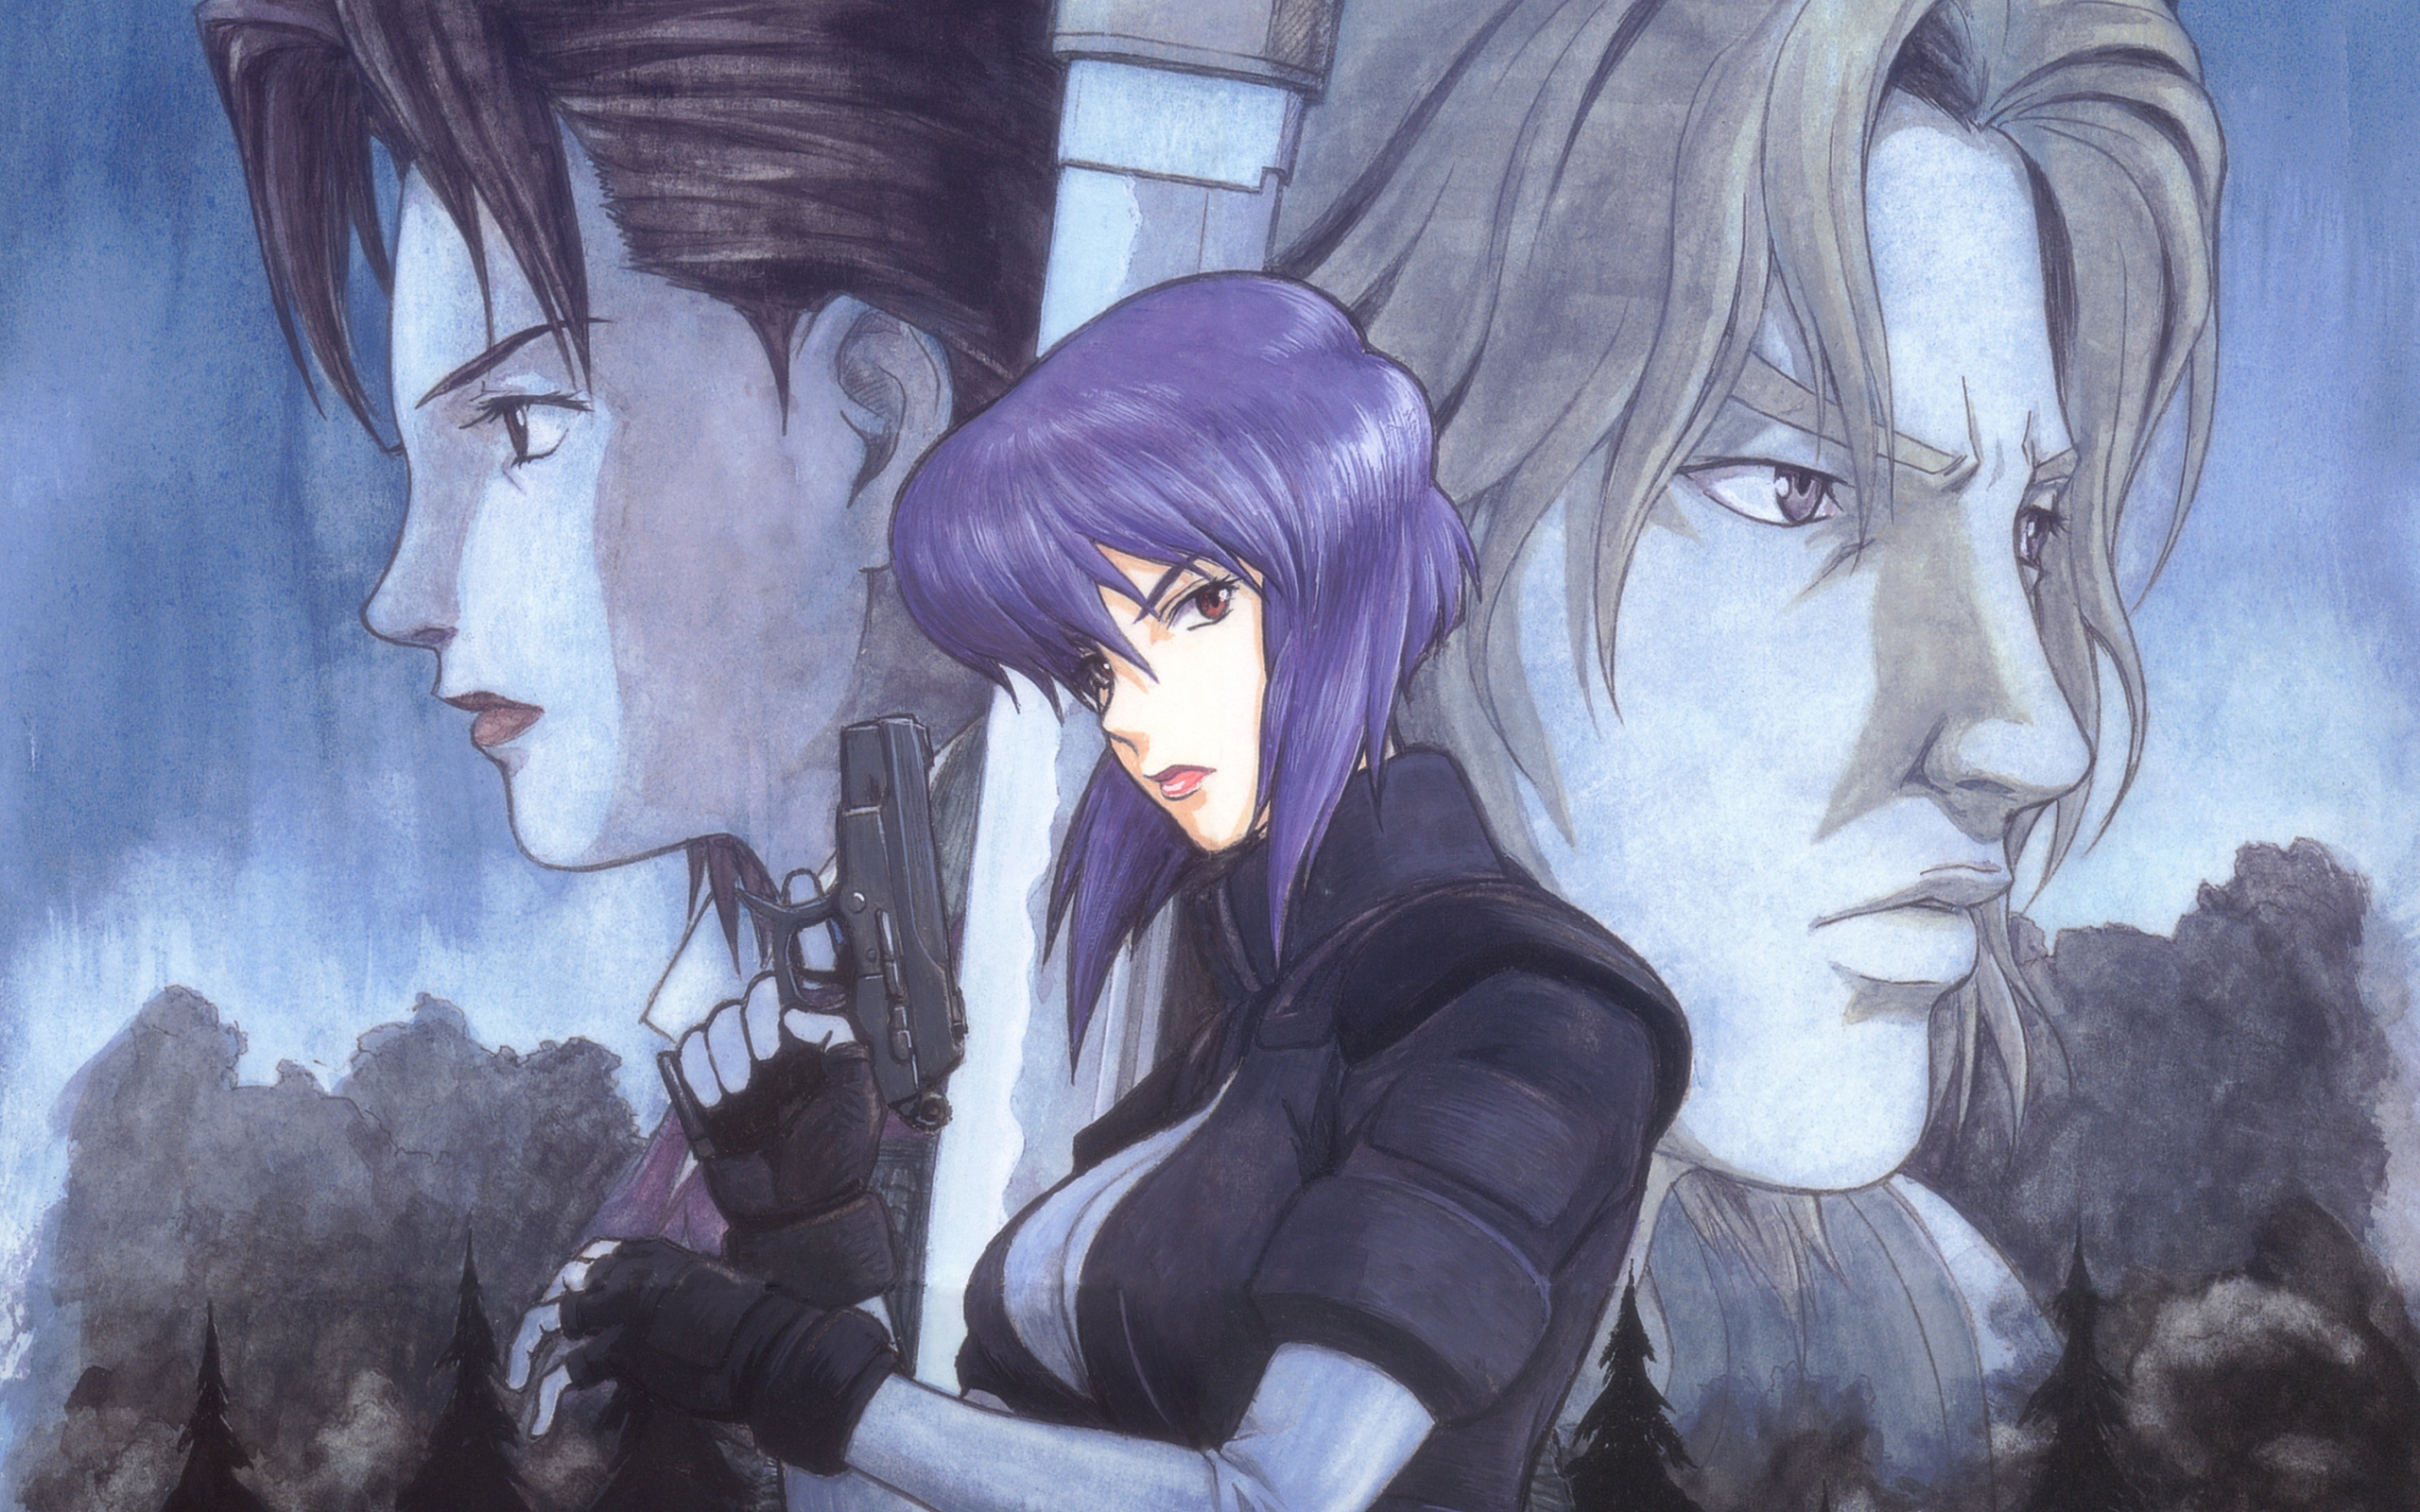 Ghost In The Shell Hd Wallpaper Background Image 2560x1600 Id 47121 Wallpaper Abyss